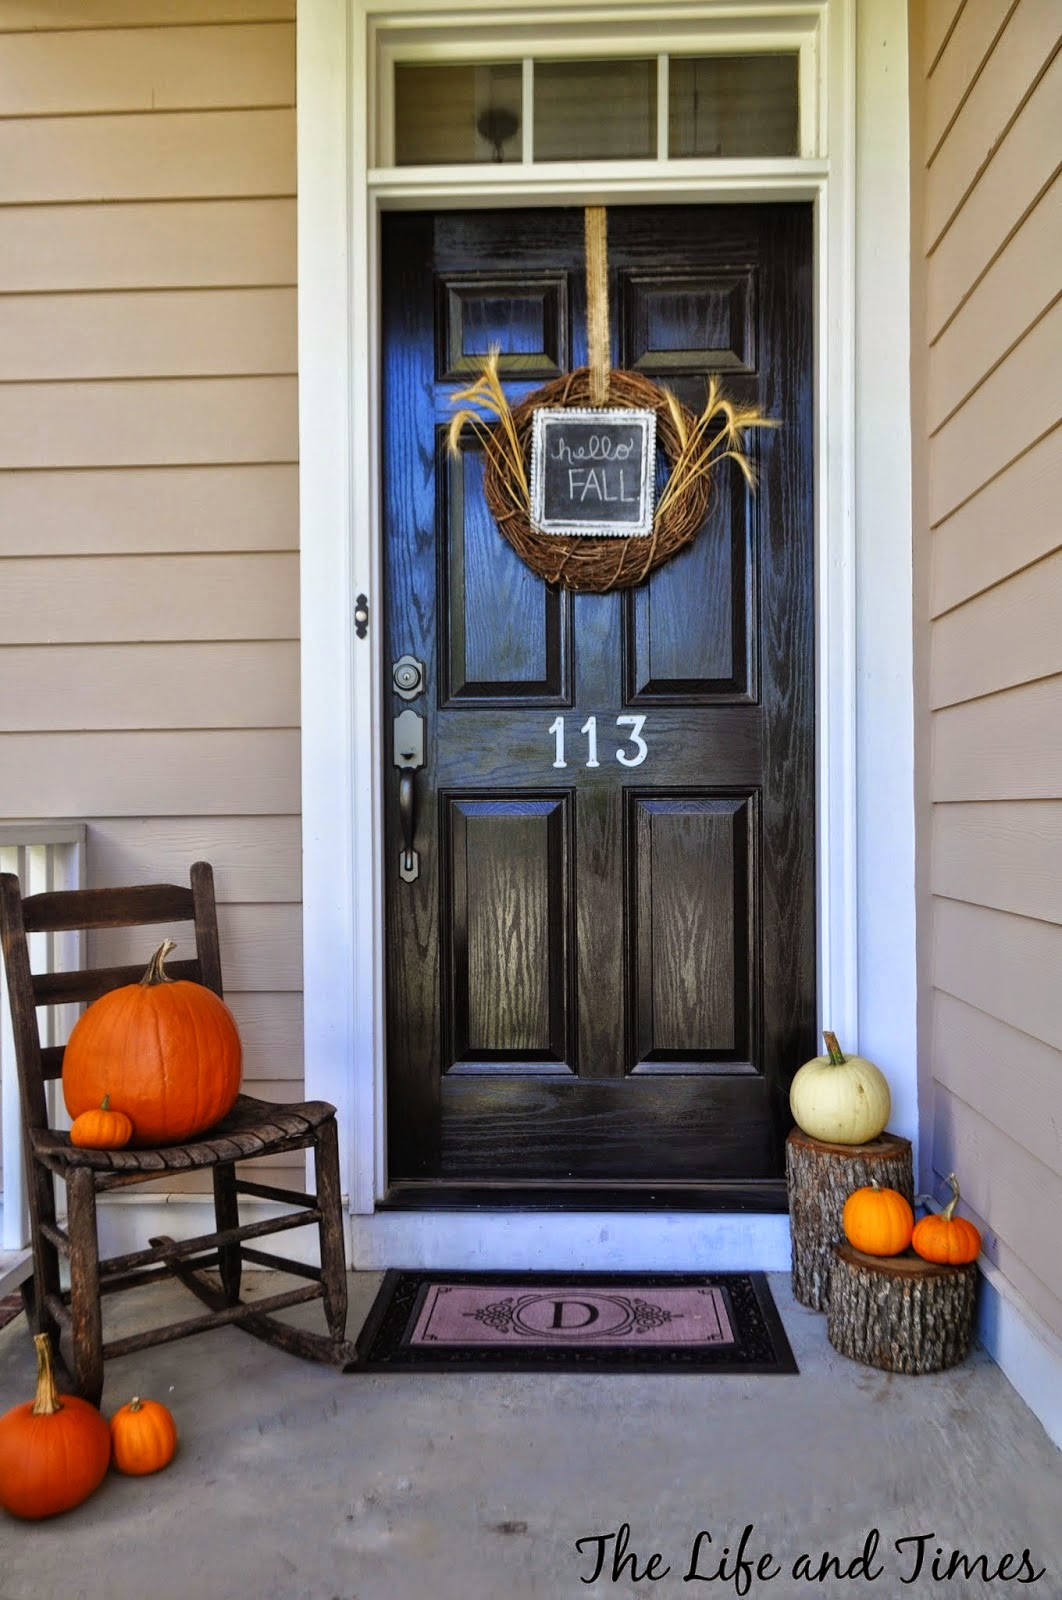 a glimpse inside 25 fall halloween front porch decorating ideas - Halloween Front Porch Decorating Ideas